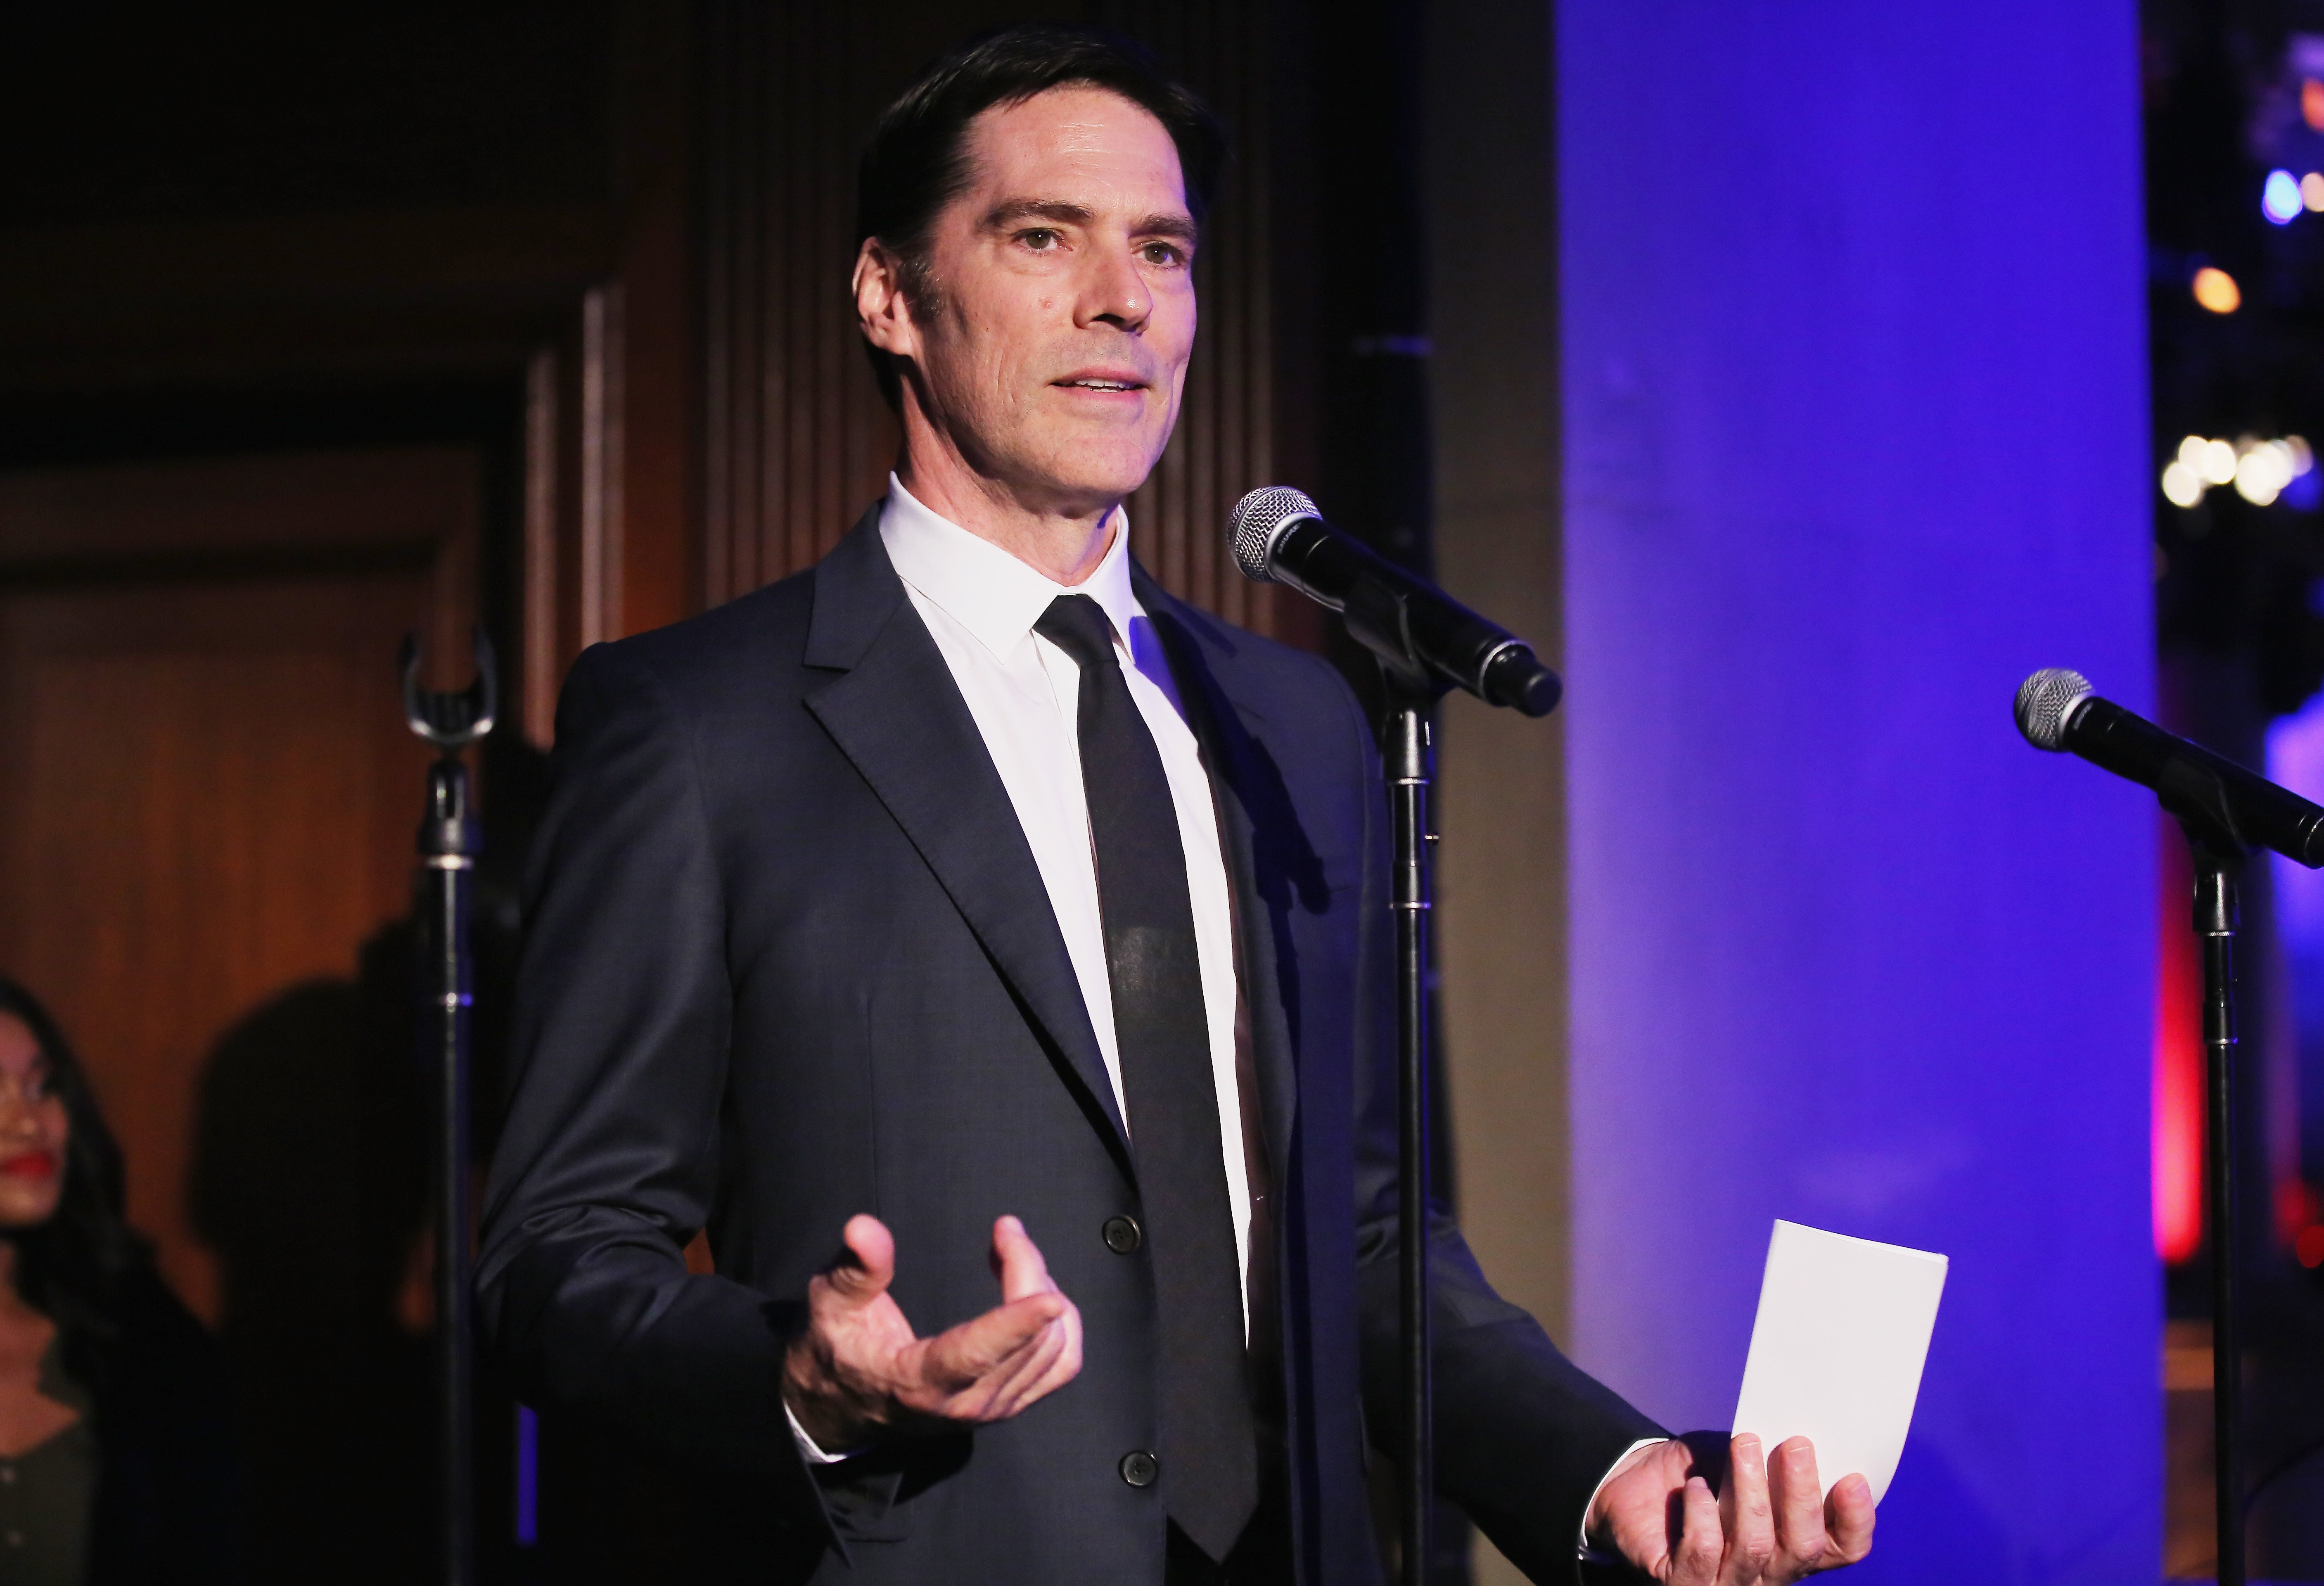 Thomas Gibson on May 31, 2018 at Gotham Hall in New York City | Source: Getty Images